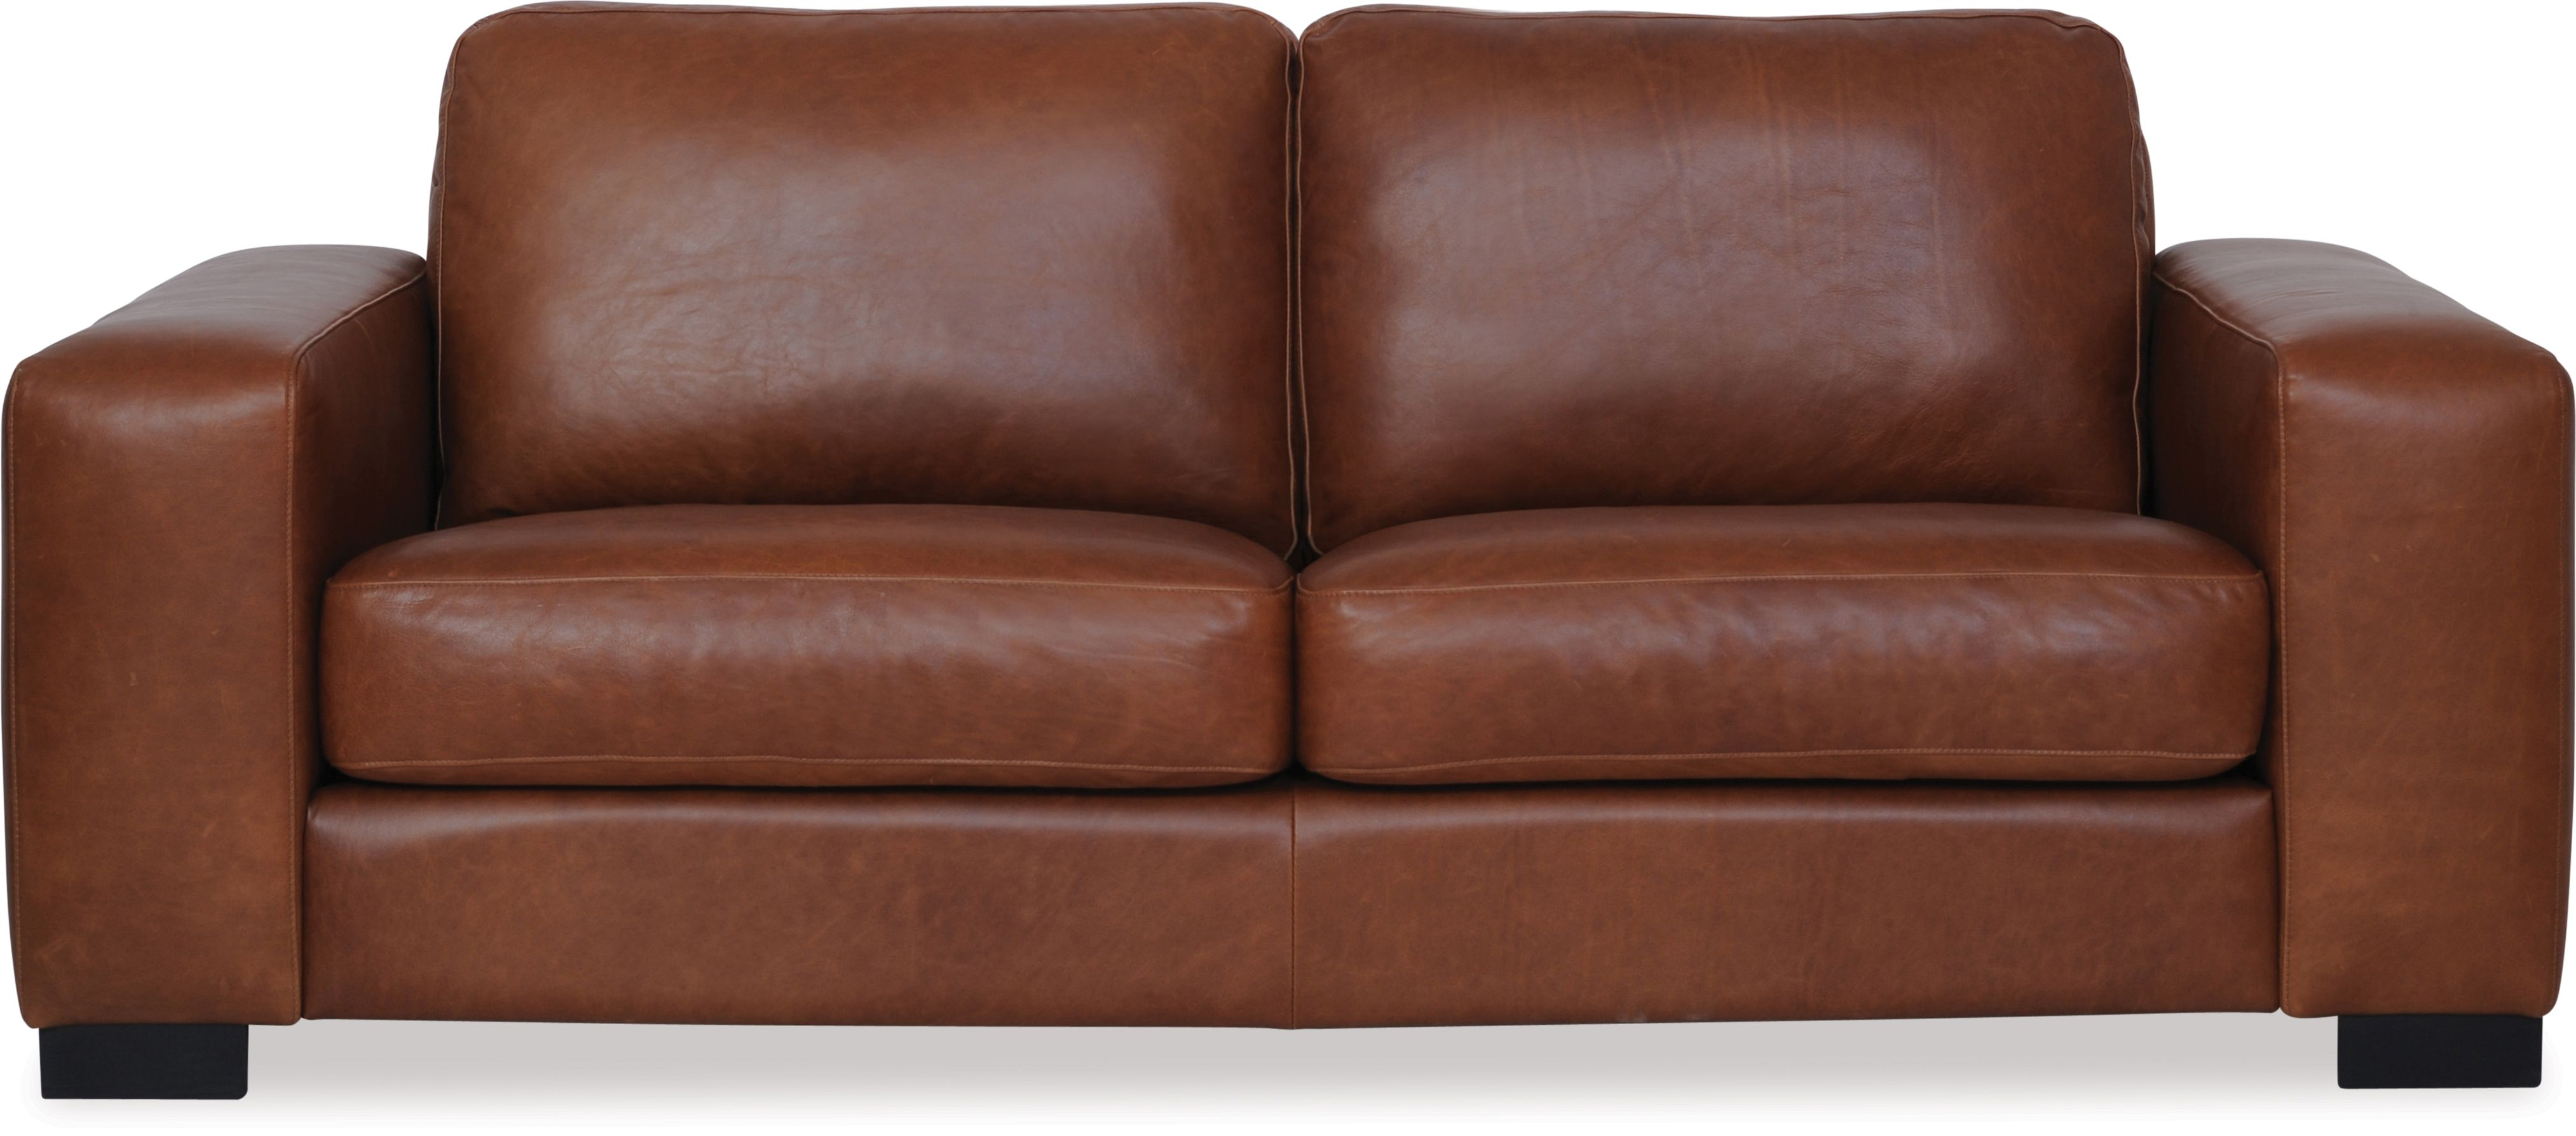 Festival Leather Corner Lounge Suite With Chaise Lounge Suites Leather Chaise Lounge Sofa Layout